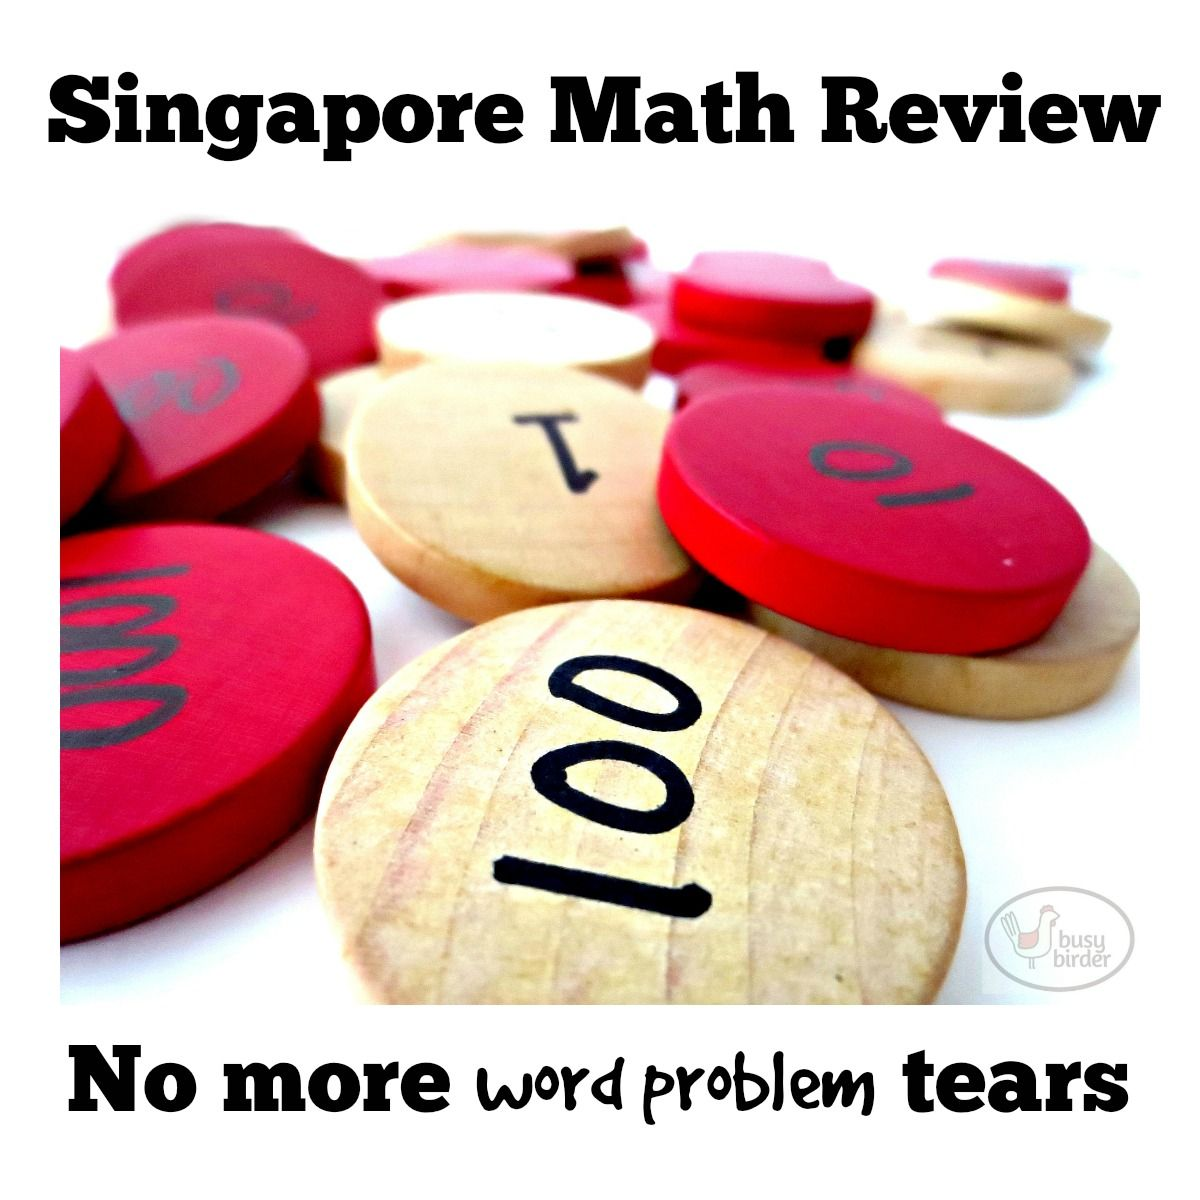 Review Of Singapore Math No More Tears For Word Problems